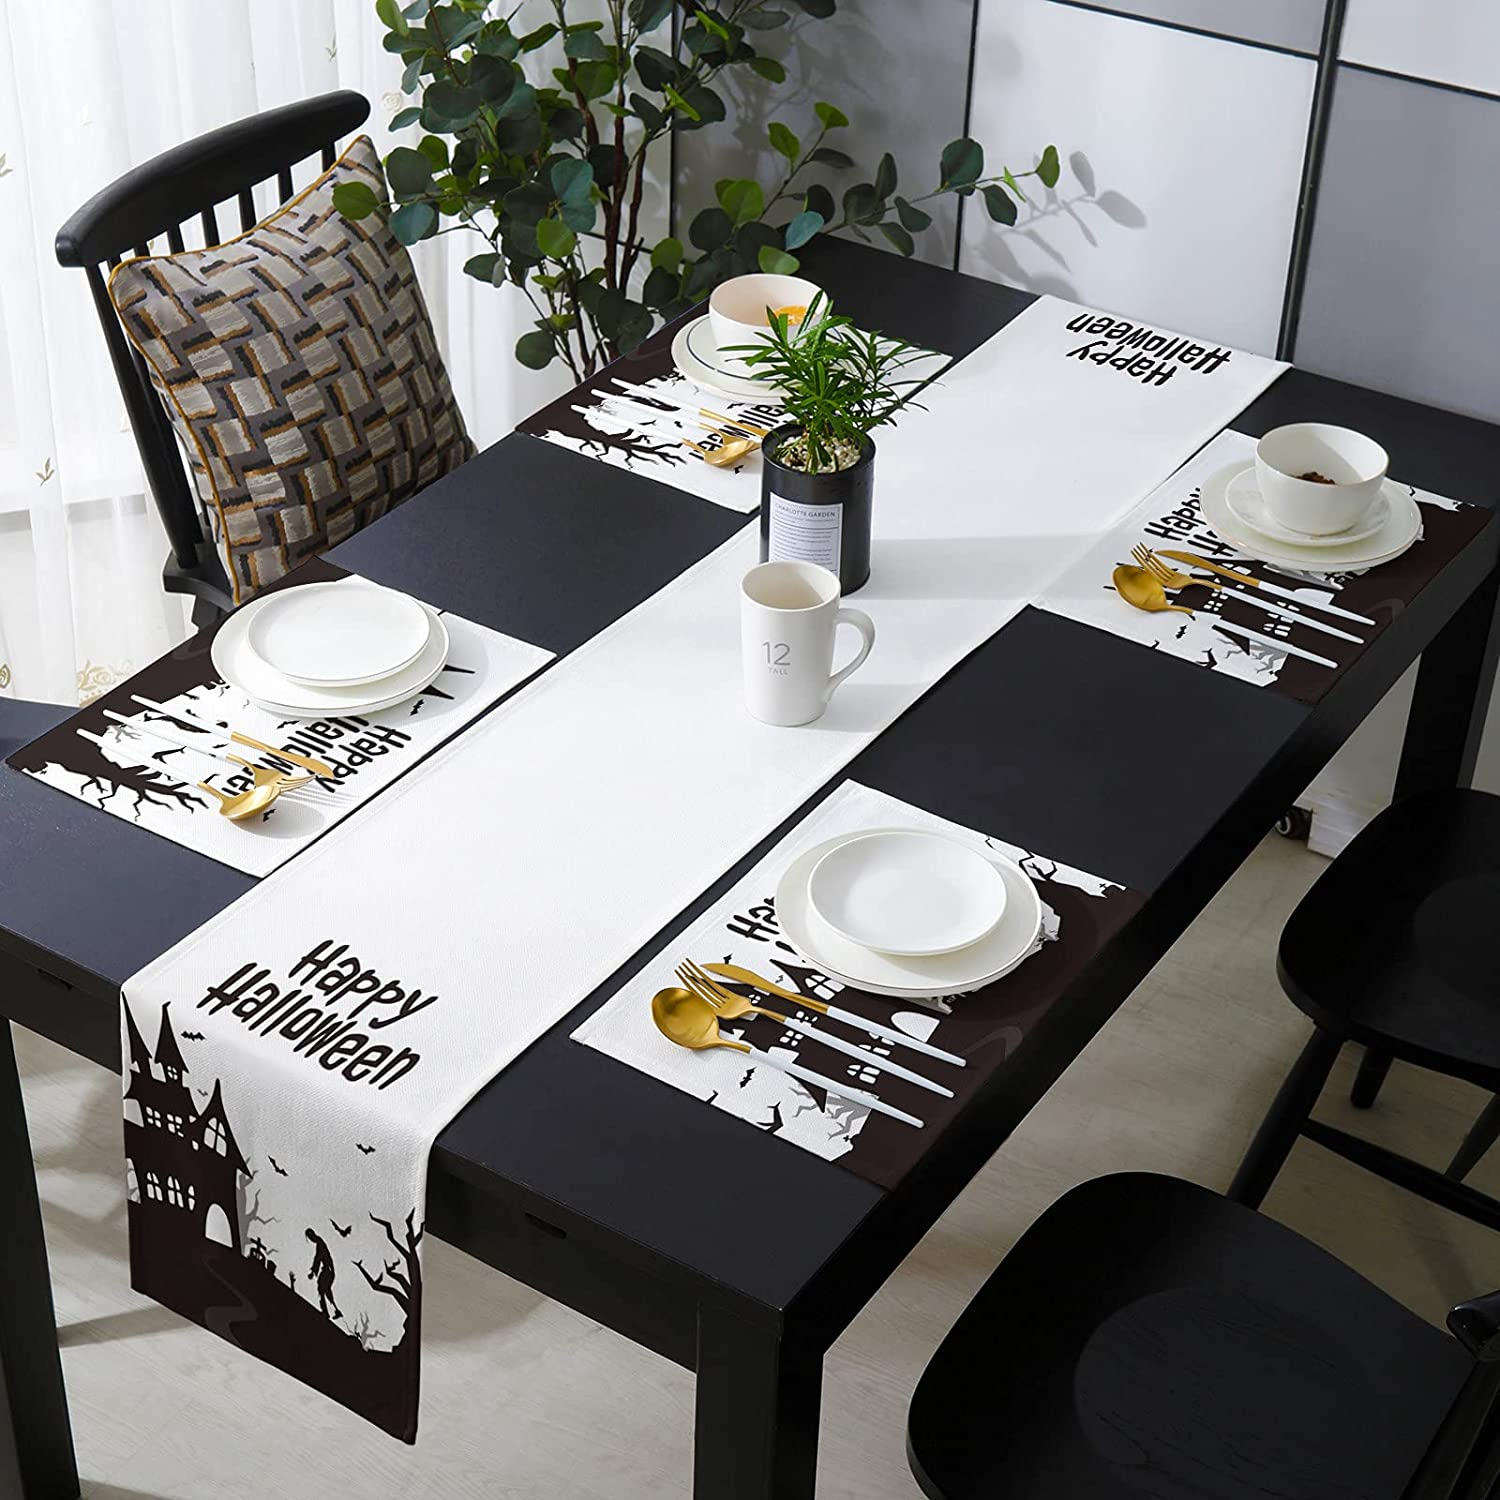 SIGOUYI 4 Placemats Selling rankings with Matching Inches 16x72 Los Angeles Mall Long Table Runner